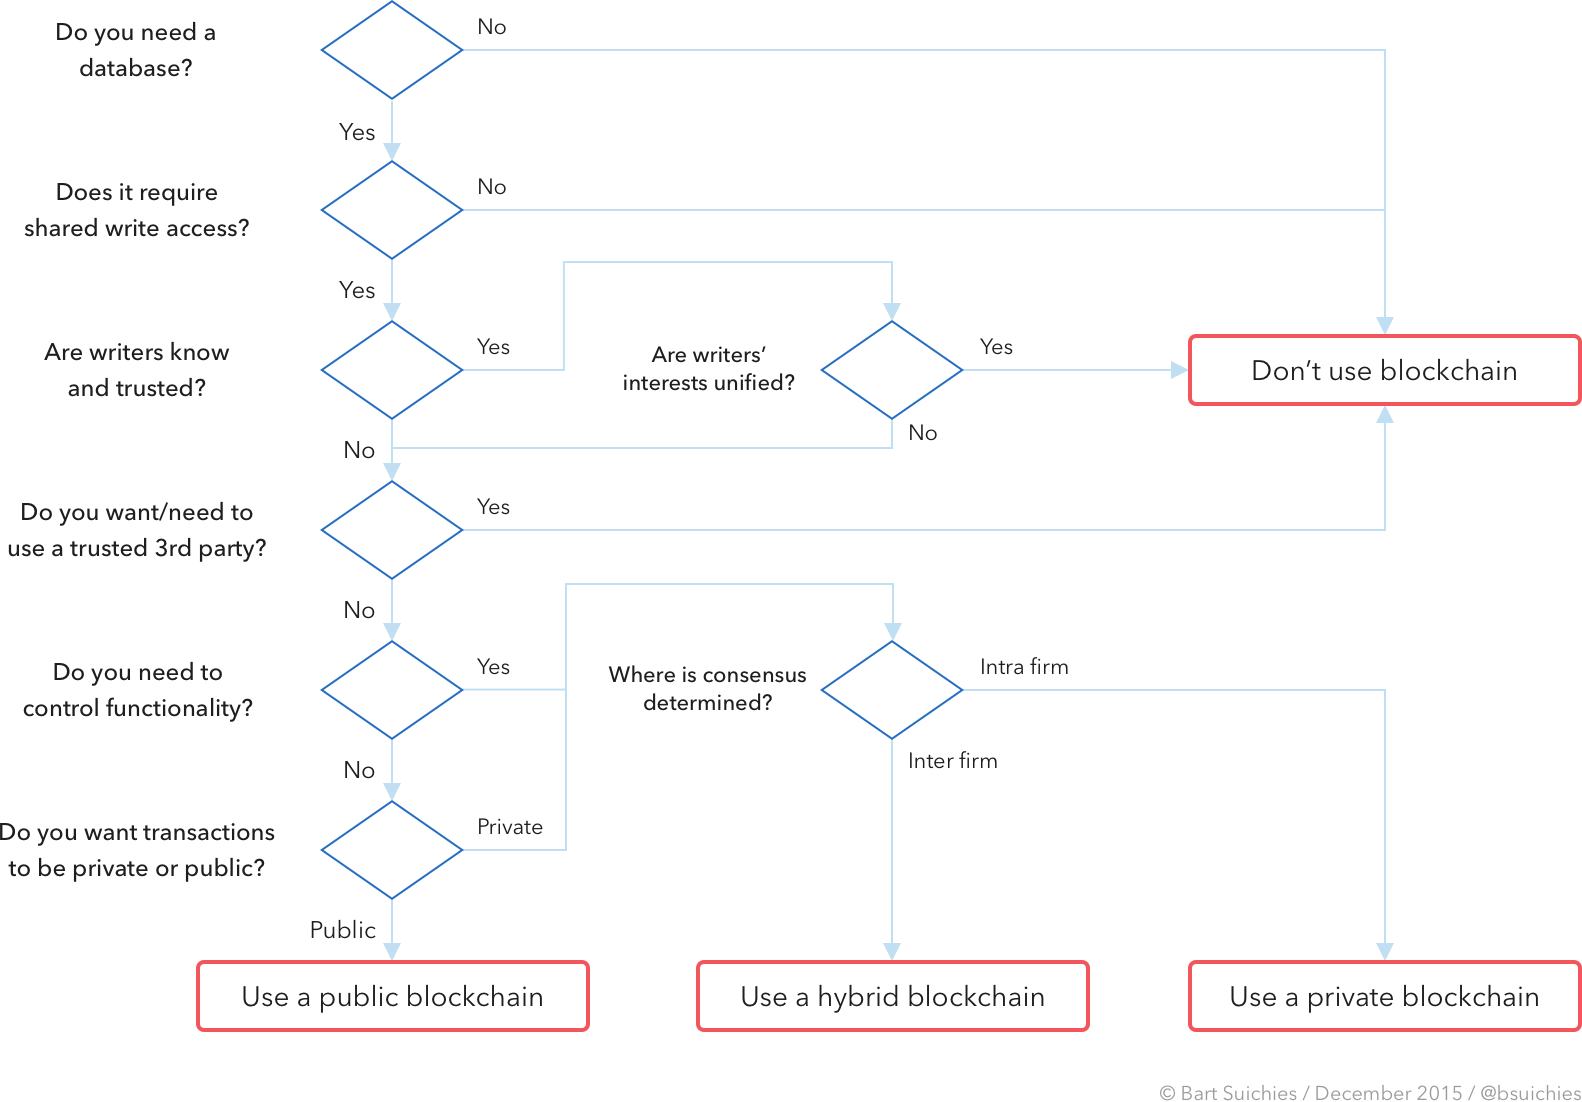 Flowchart of whether or not to use blockchain